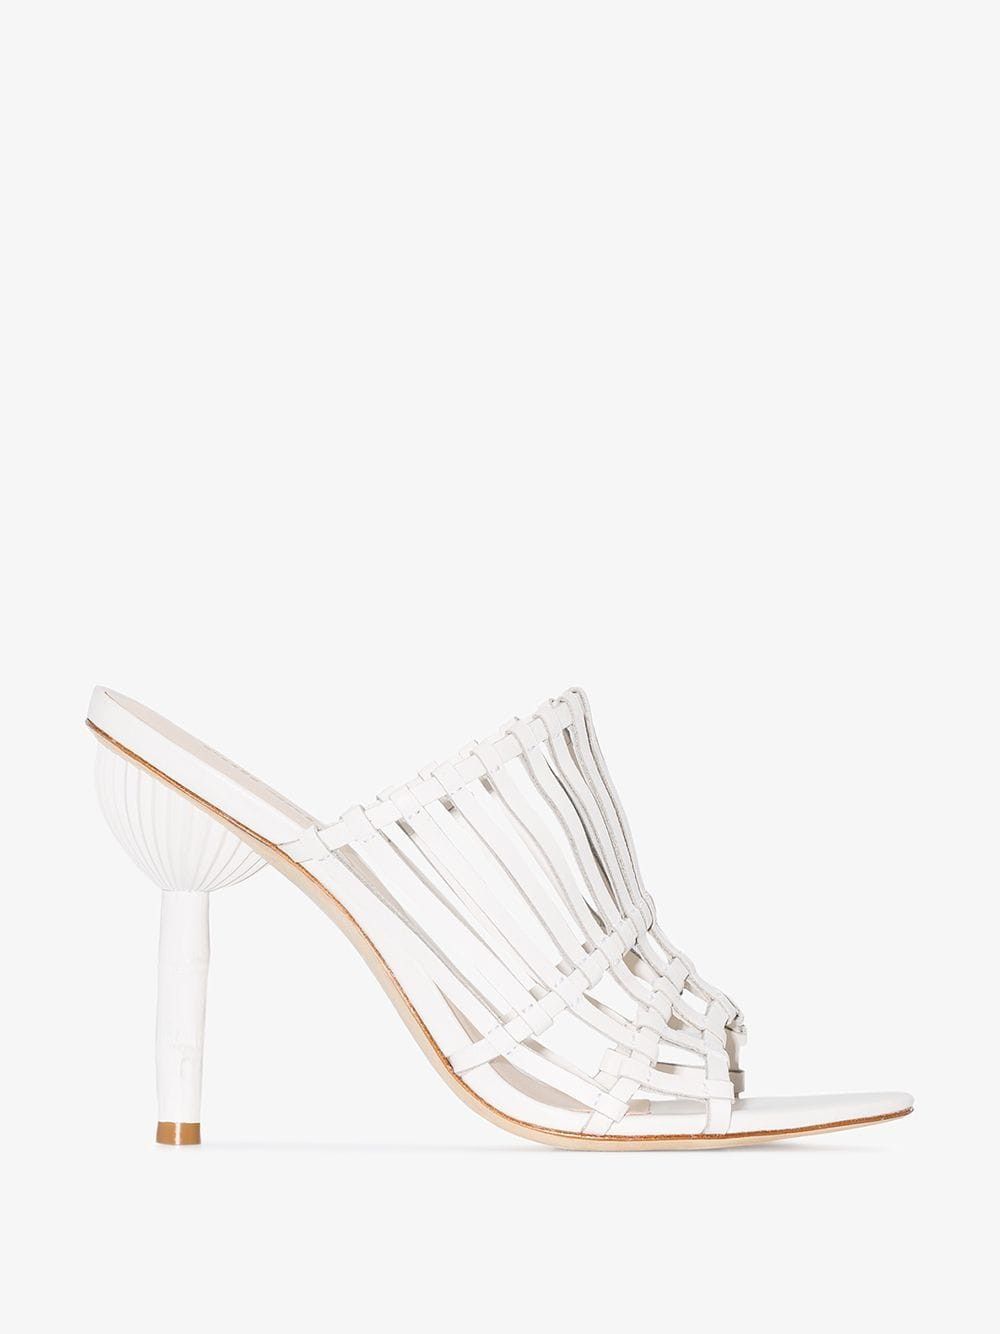 Cult Gaia TBC 100 caged high heel sandals in white